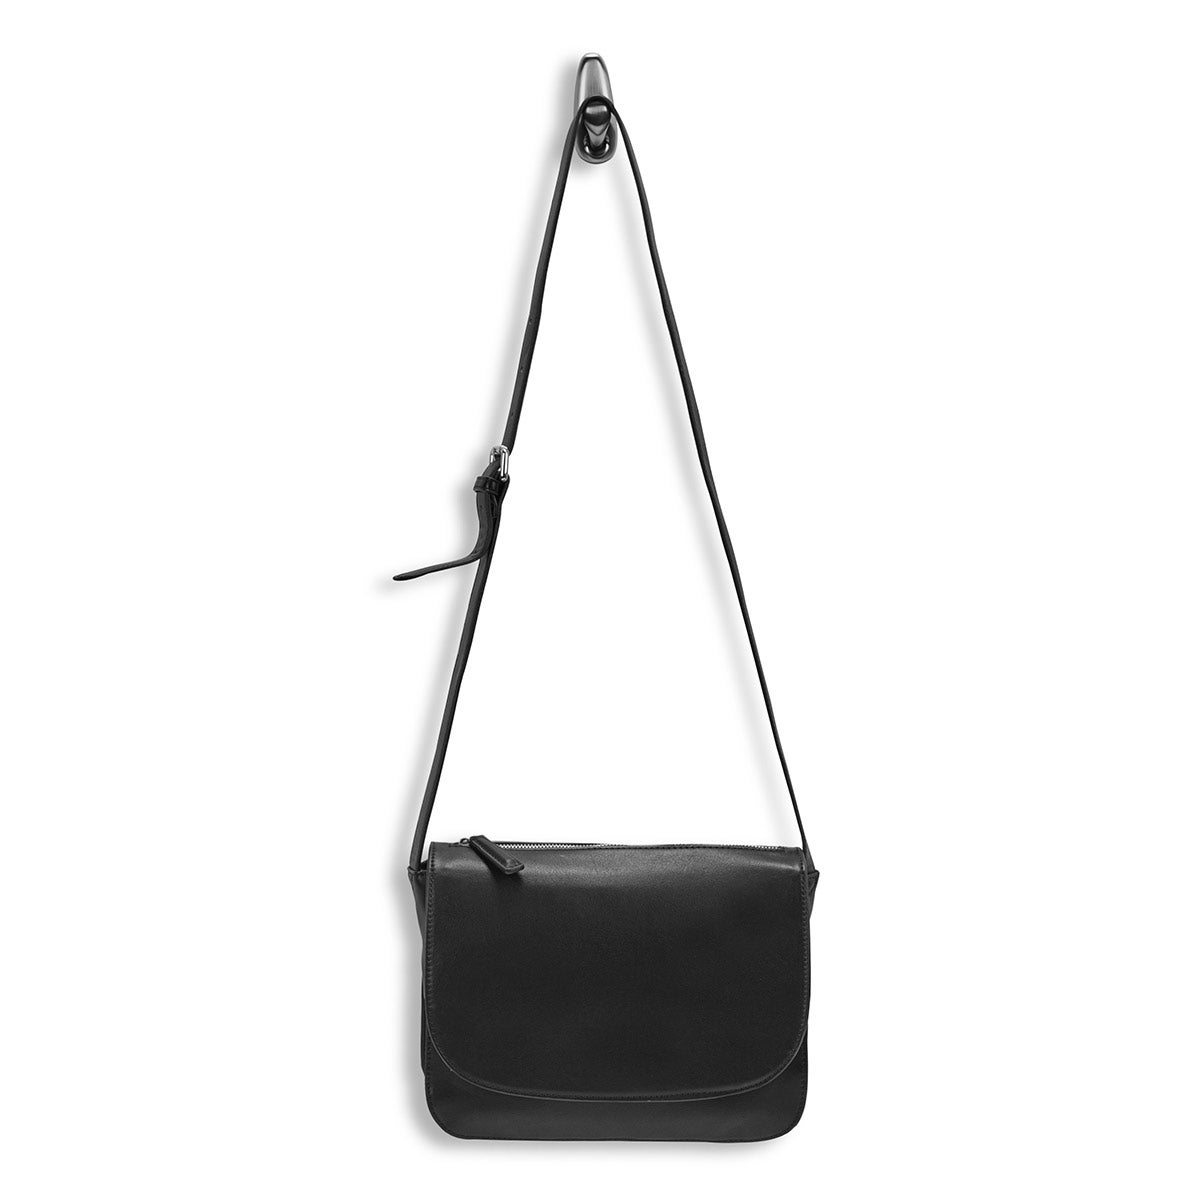 Lds Mattie black front flap crossbody